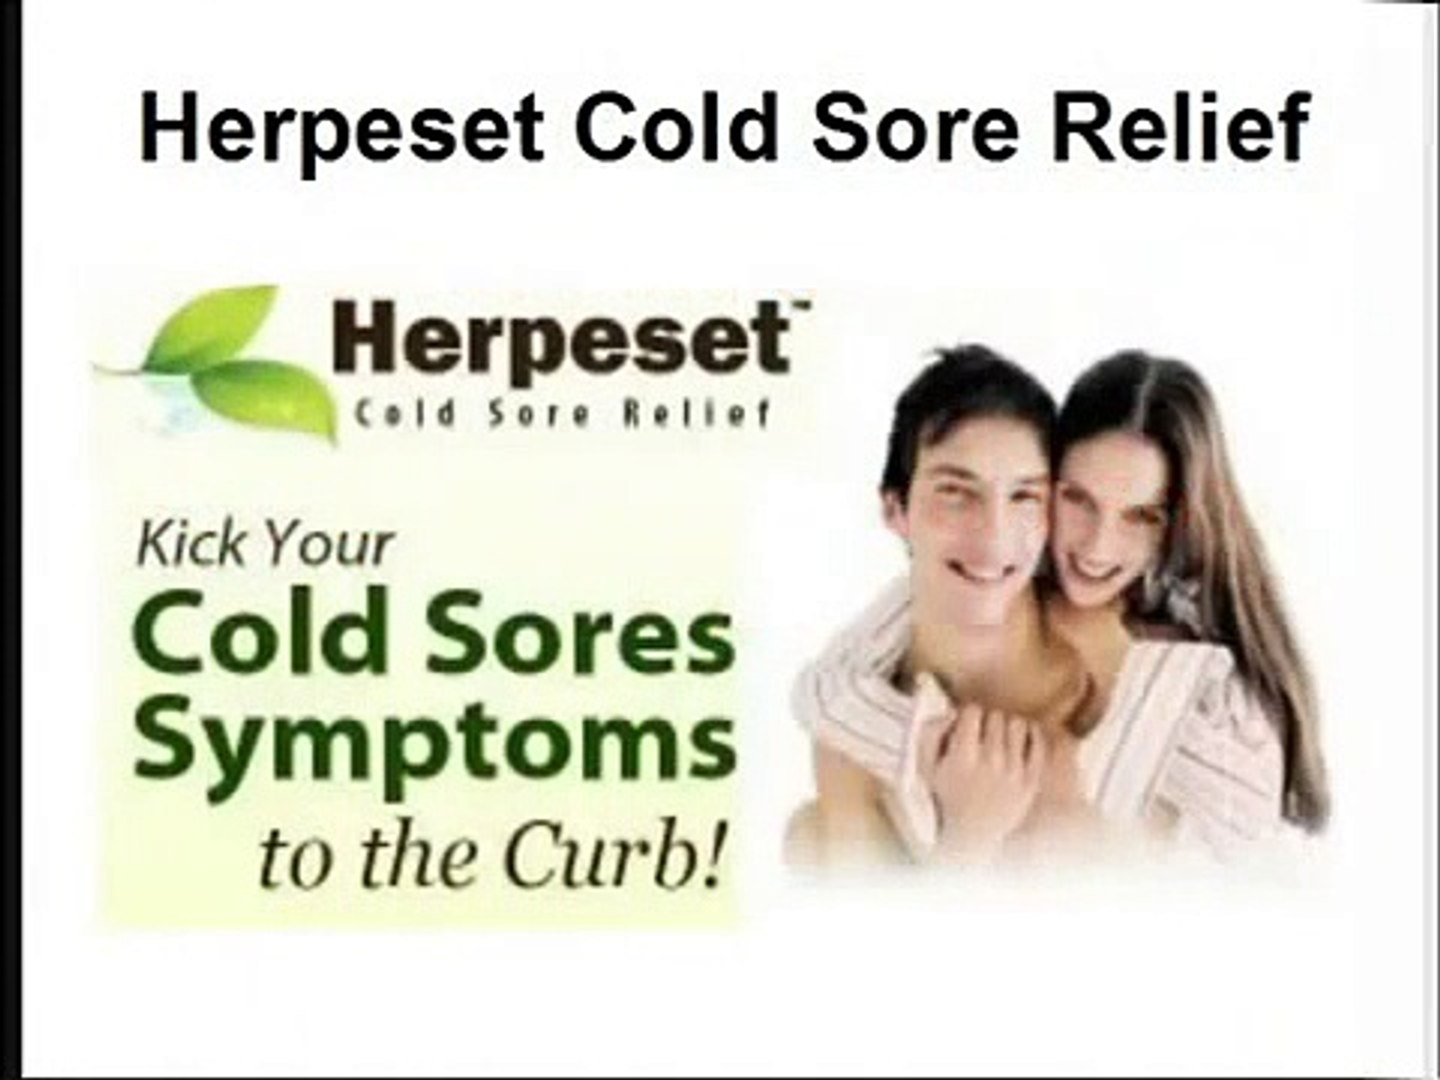 Herpeset Cold Sore Relief How To Get Rid Of Cold Sores Fast